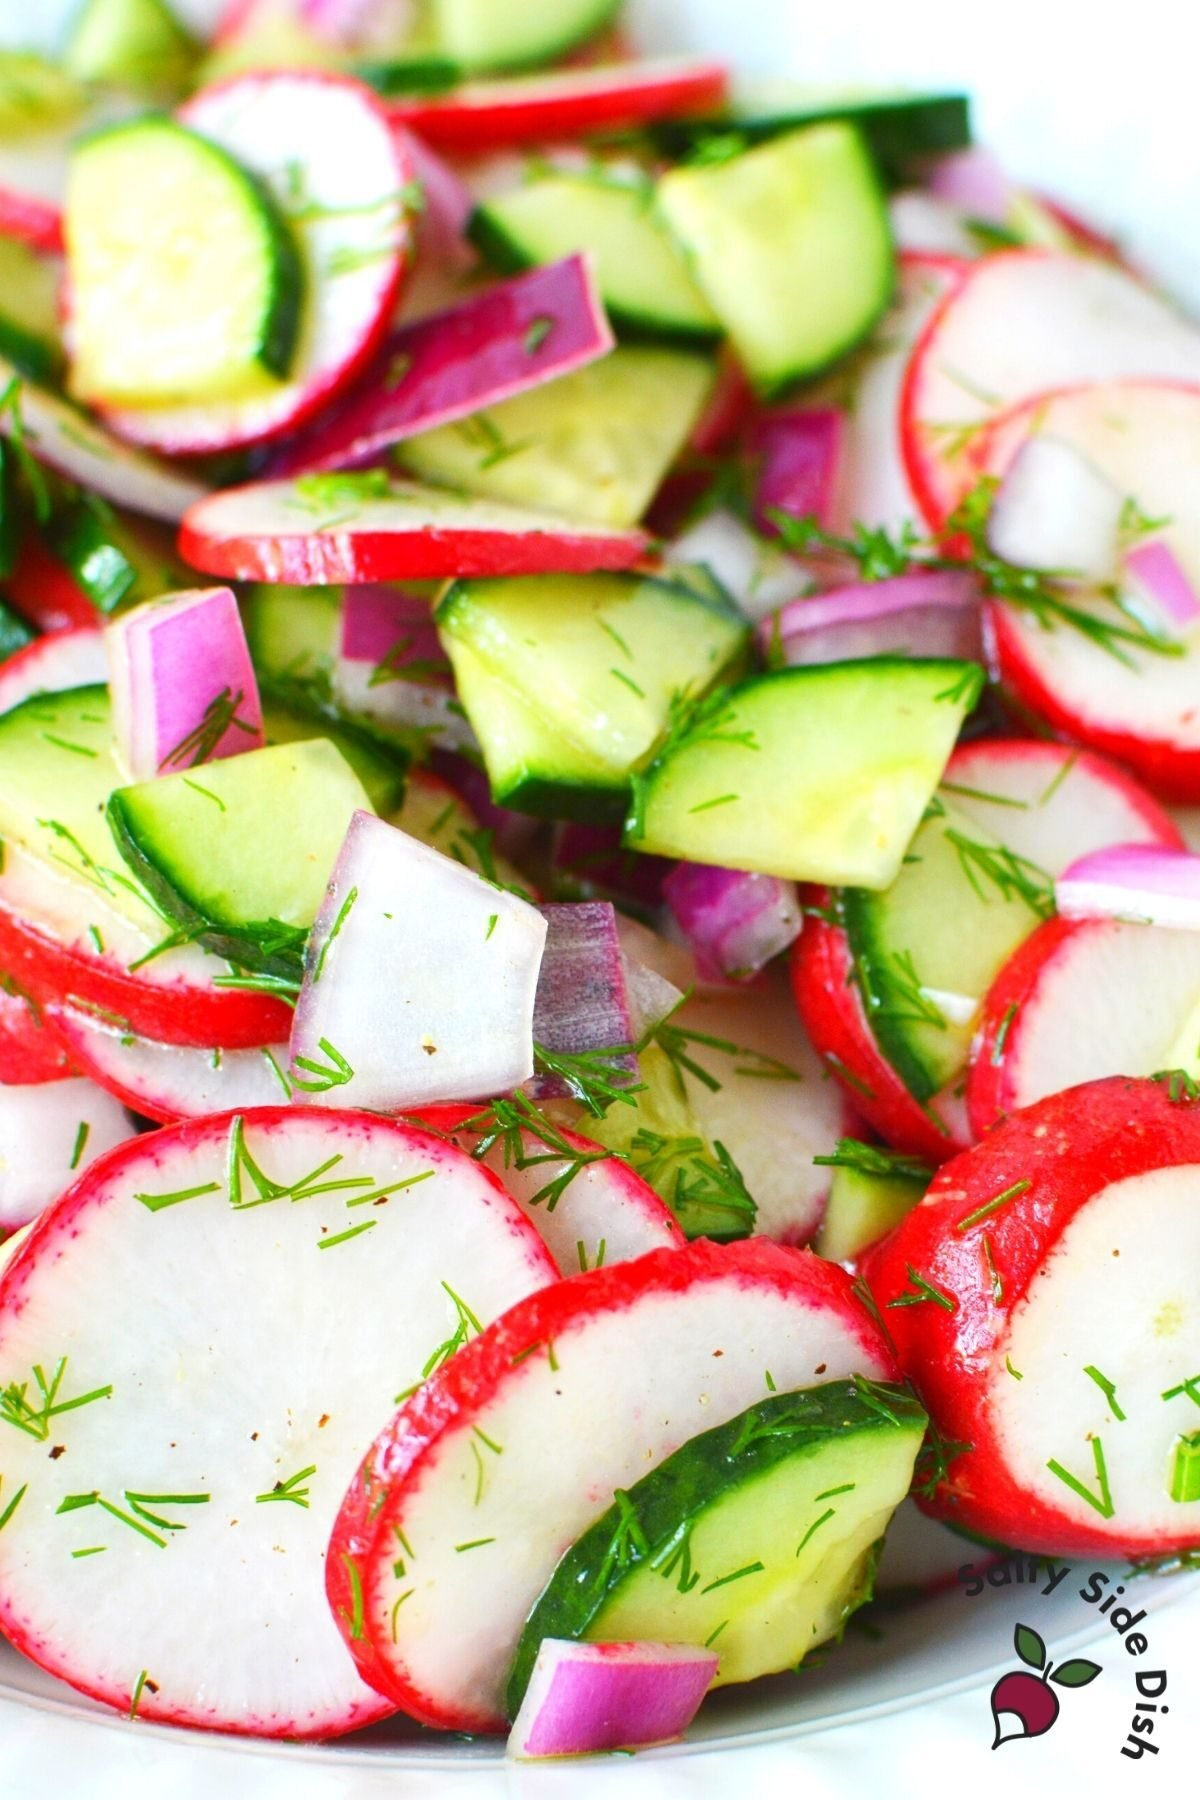 slices of radishes and quartered cucumbers in a bowl.